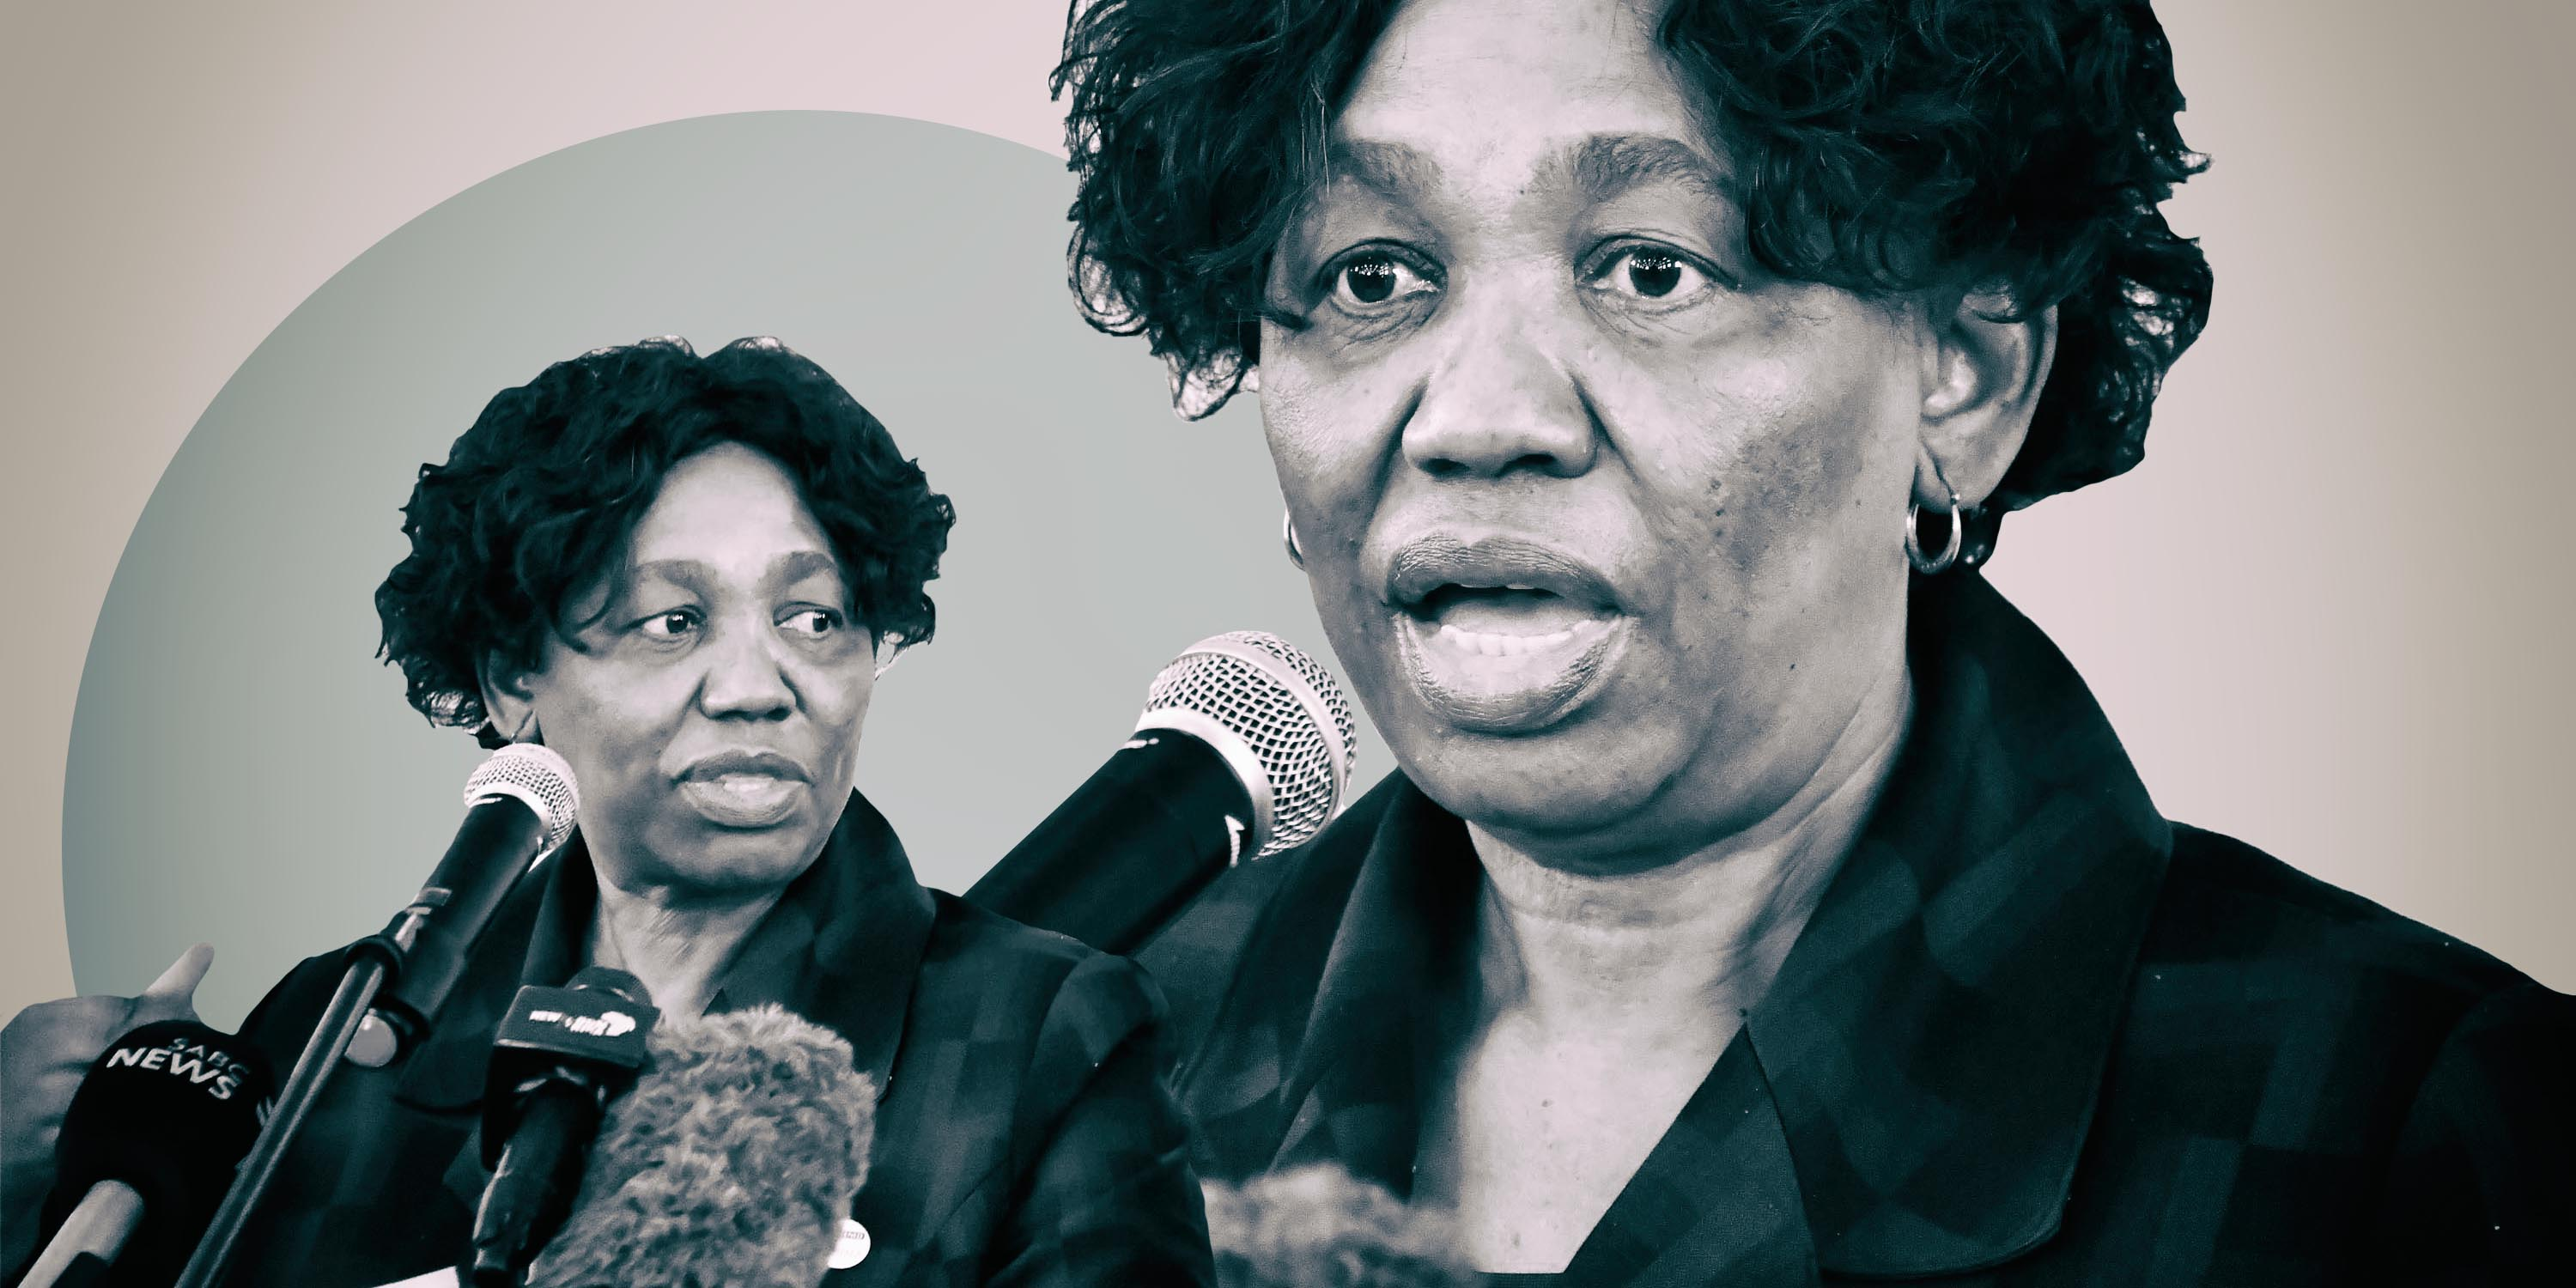 'Cry of the Xcluded': Saftu and Amcu put differences aside to fight austerity and ignite the left - Daily Maverick